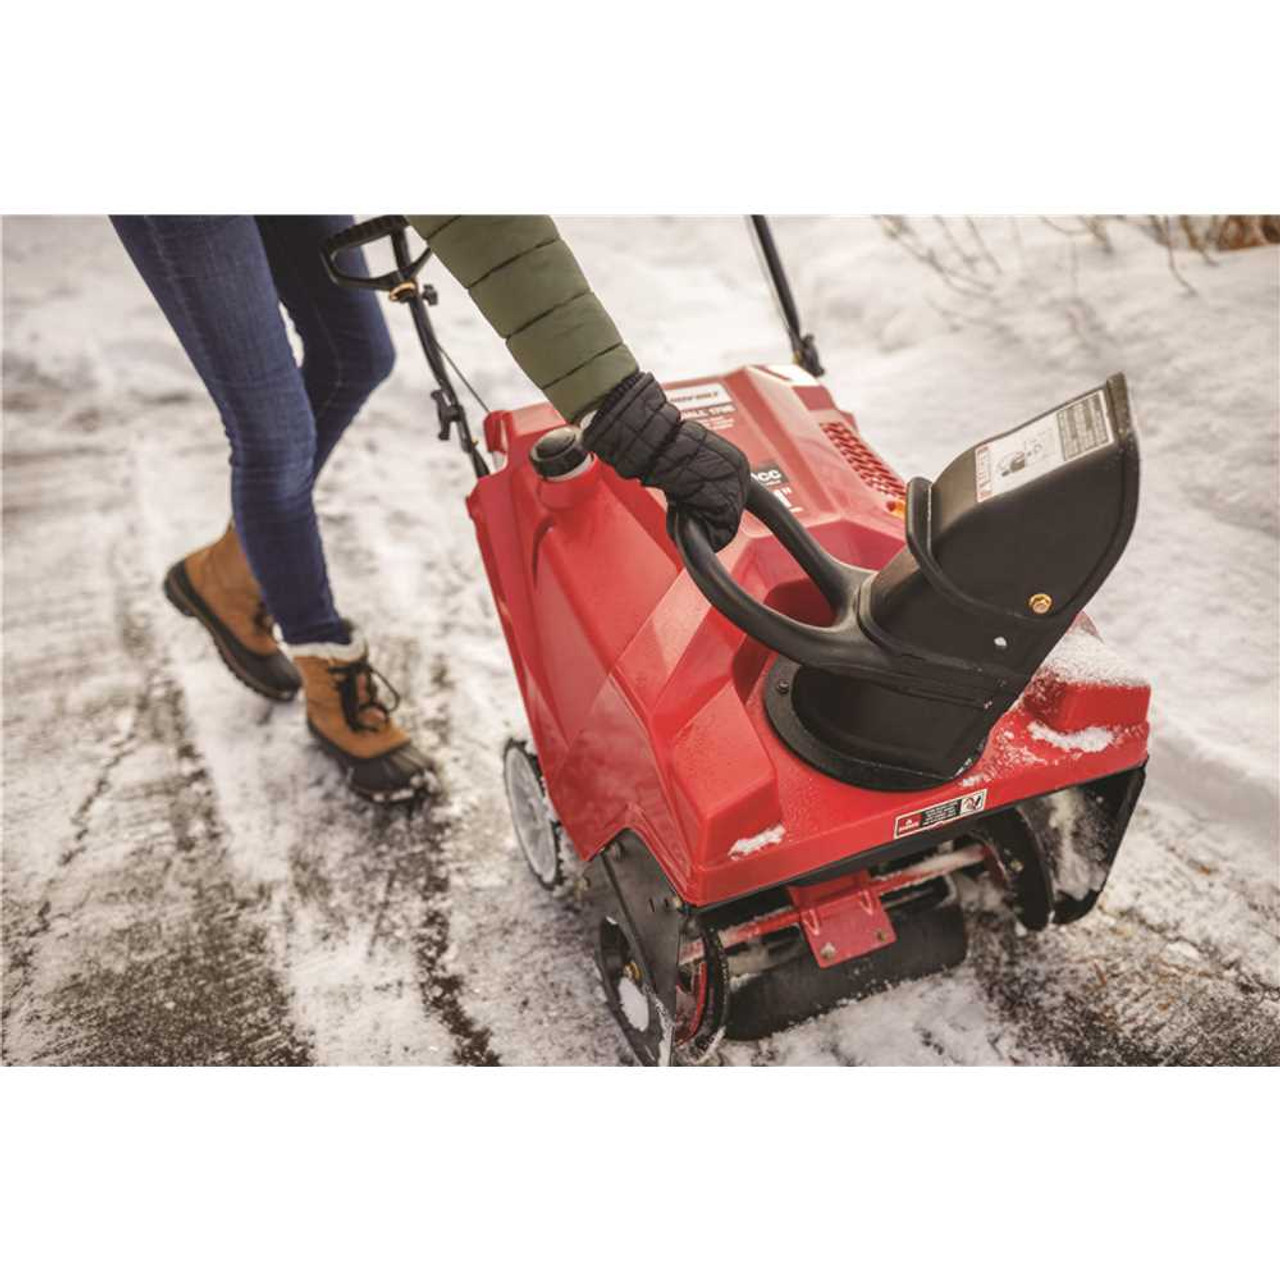 Troy-Bilt Squall 21 in. 179 cc Single-Stage Gas Snow Blower with Electric Start and E-Z Chute Control - Item # 310591835, Troy-Bilt Part # Squall 179E, UPC Code 043033589784